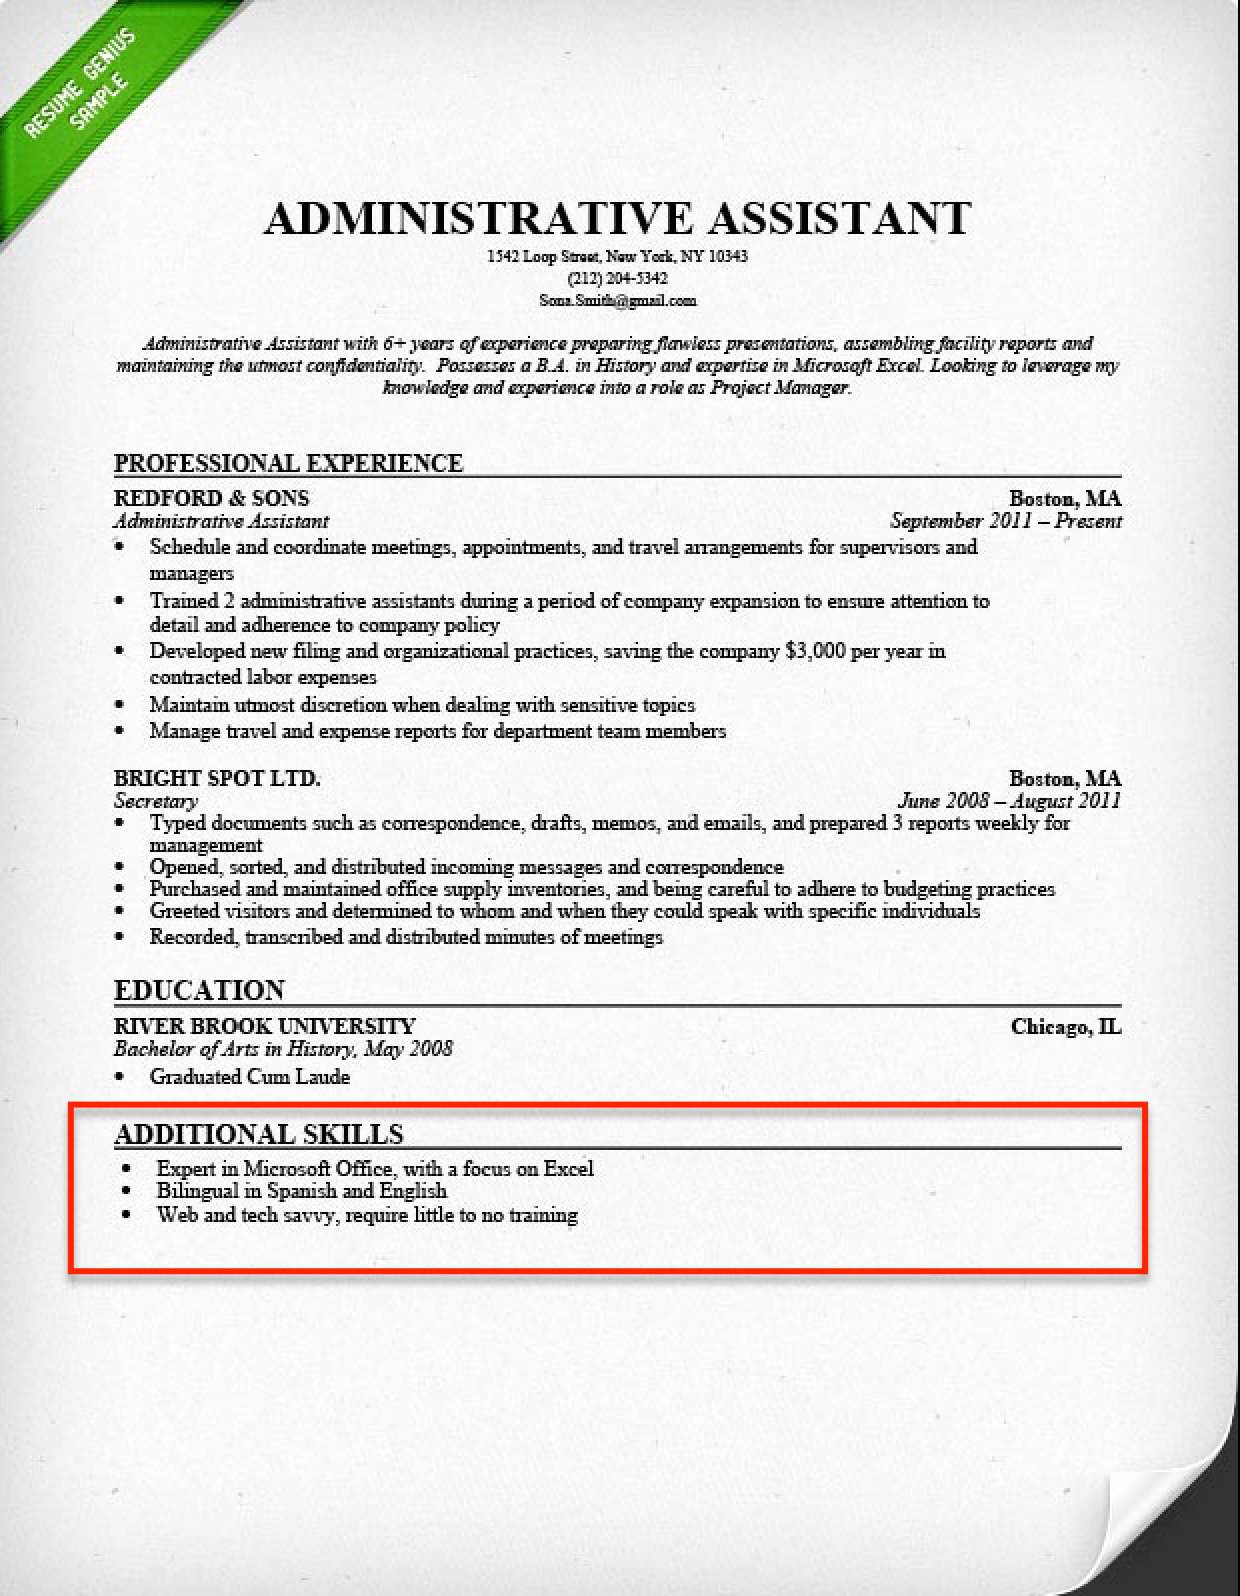 Microsoft Office Skills Resume Template Best Of Resume Skills Section 250 Skills for Your Resume